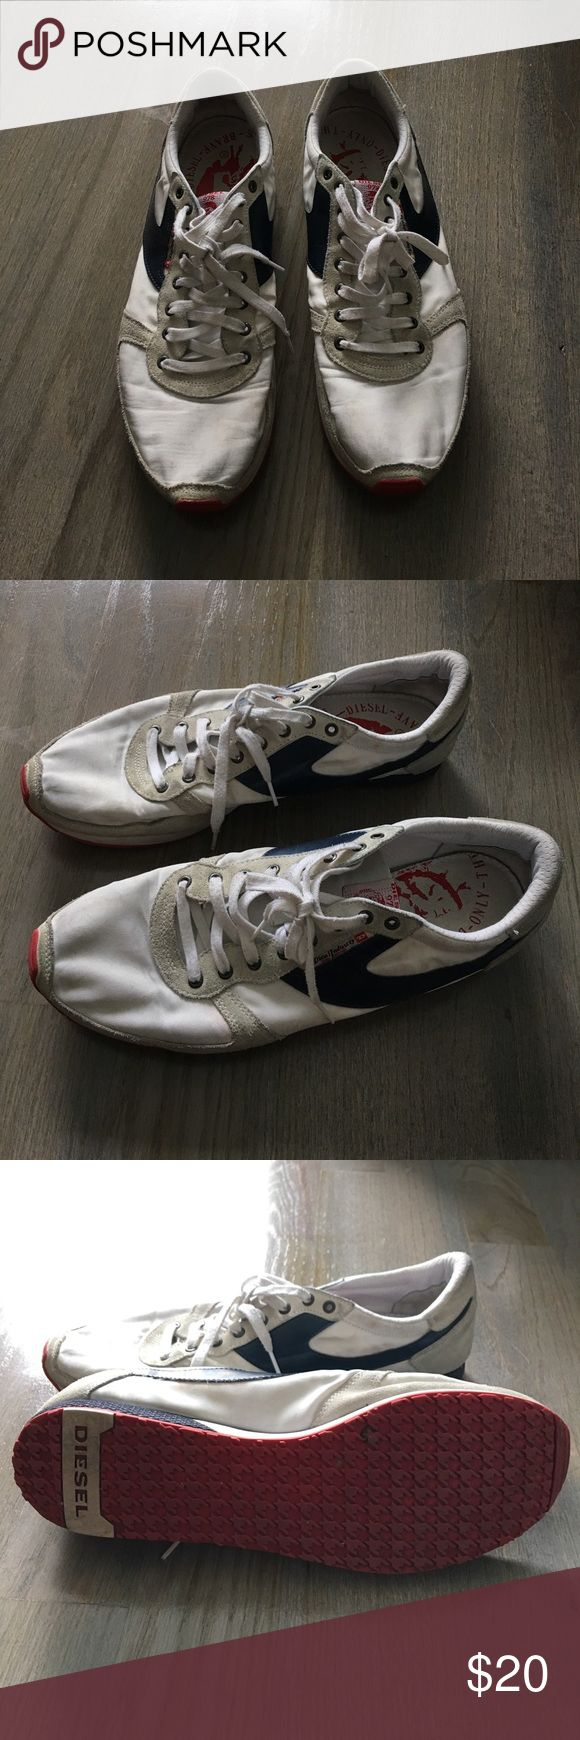 Men's Diesel Shoes In decent condition. See for yourself. Very comfortable. Diesel Shoes Sneakers